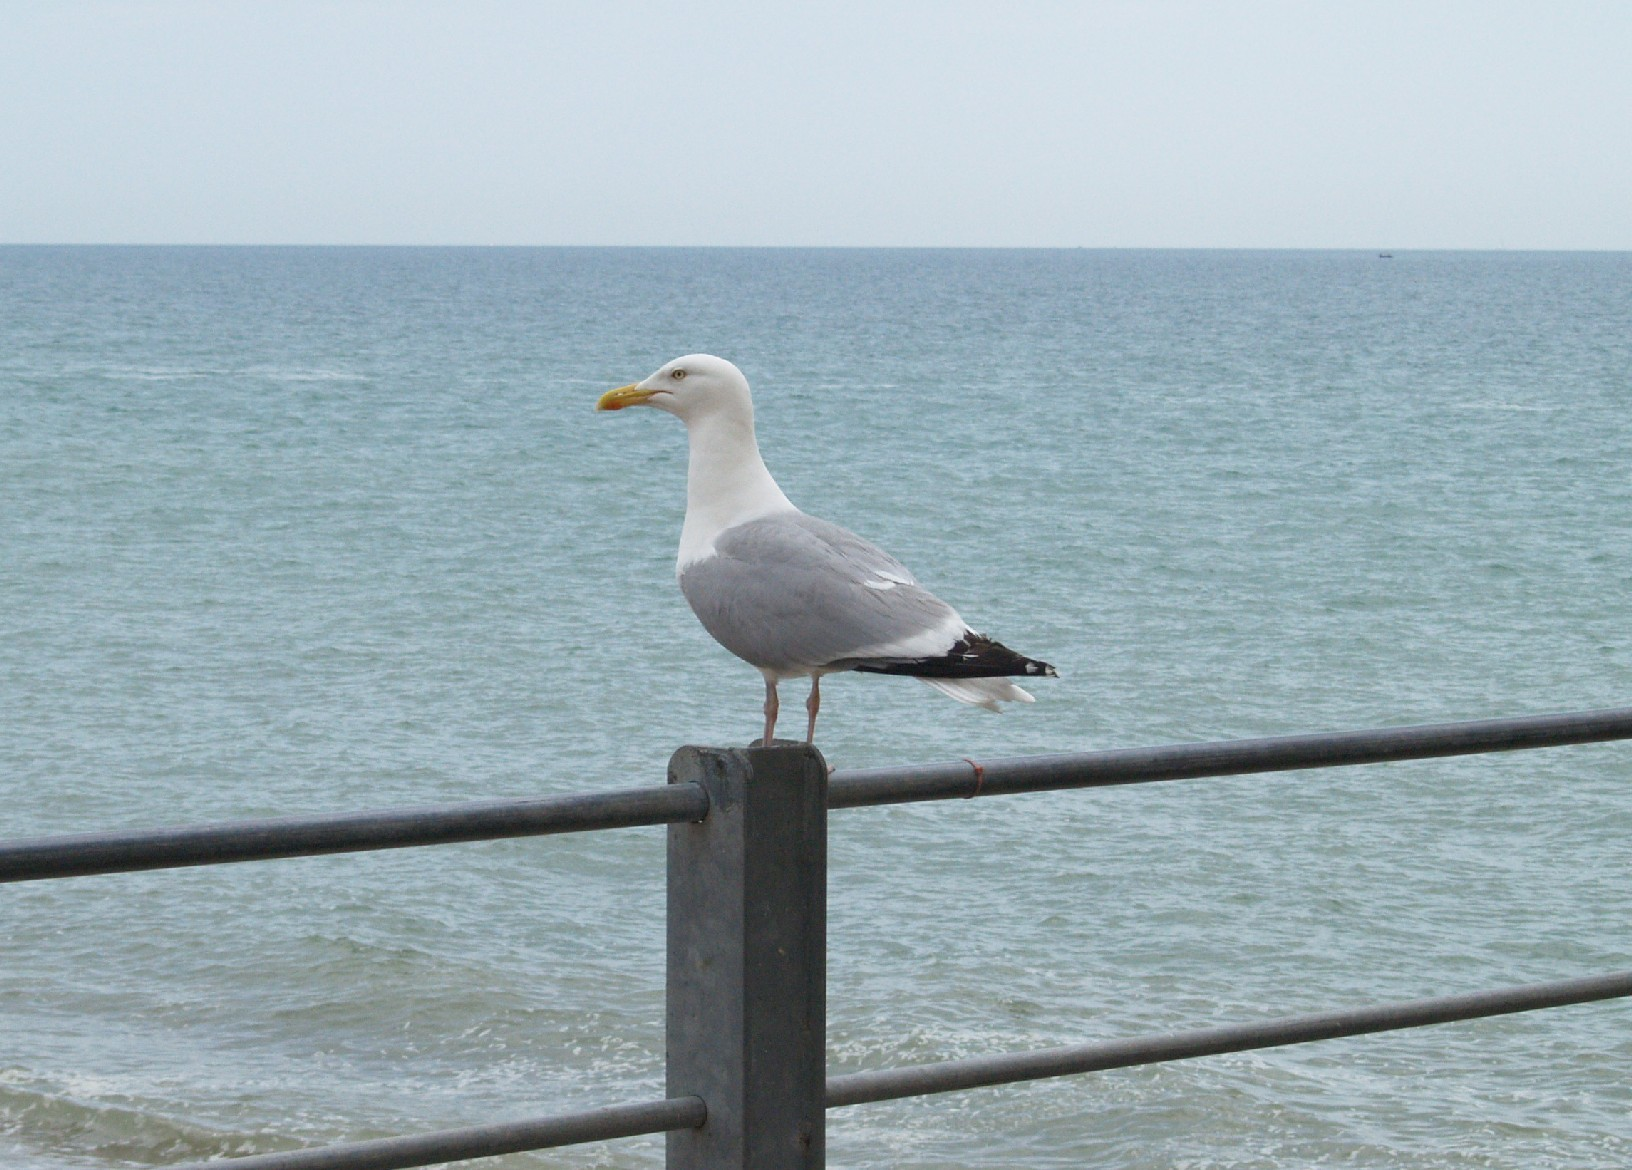 http://www.britgo.org/files/tournaments/eygc2014/seagull.jpg